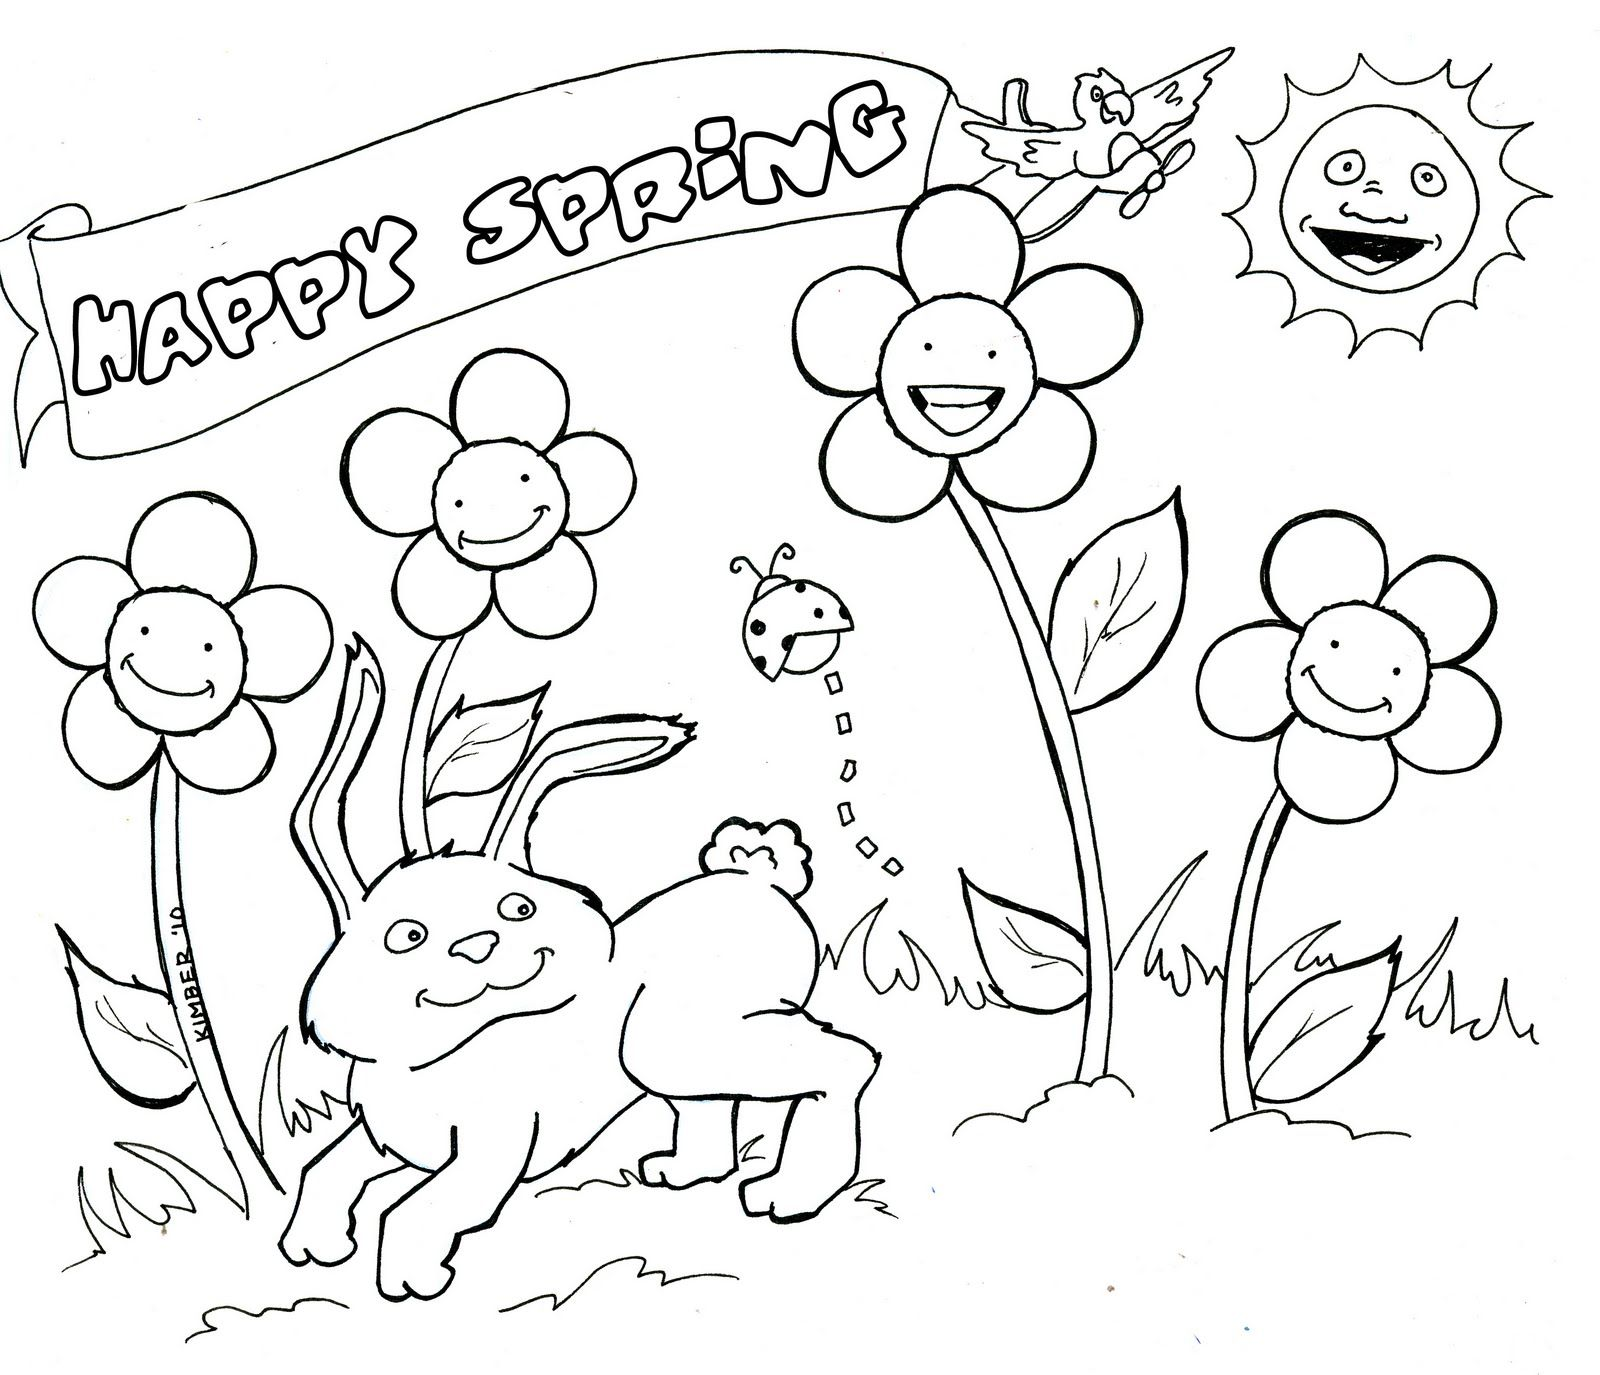 Spring Coloring Pages Chelas, Colores, S. a